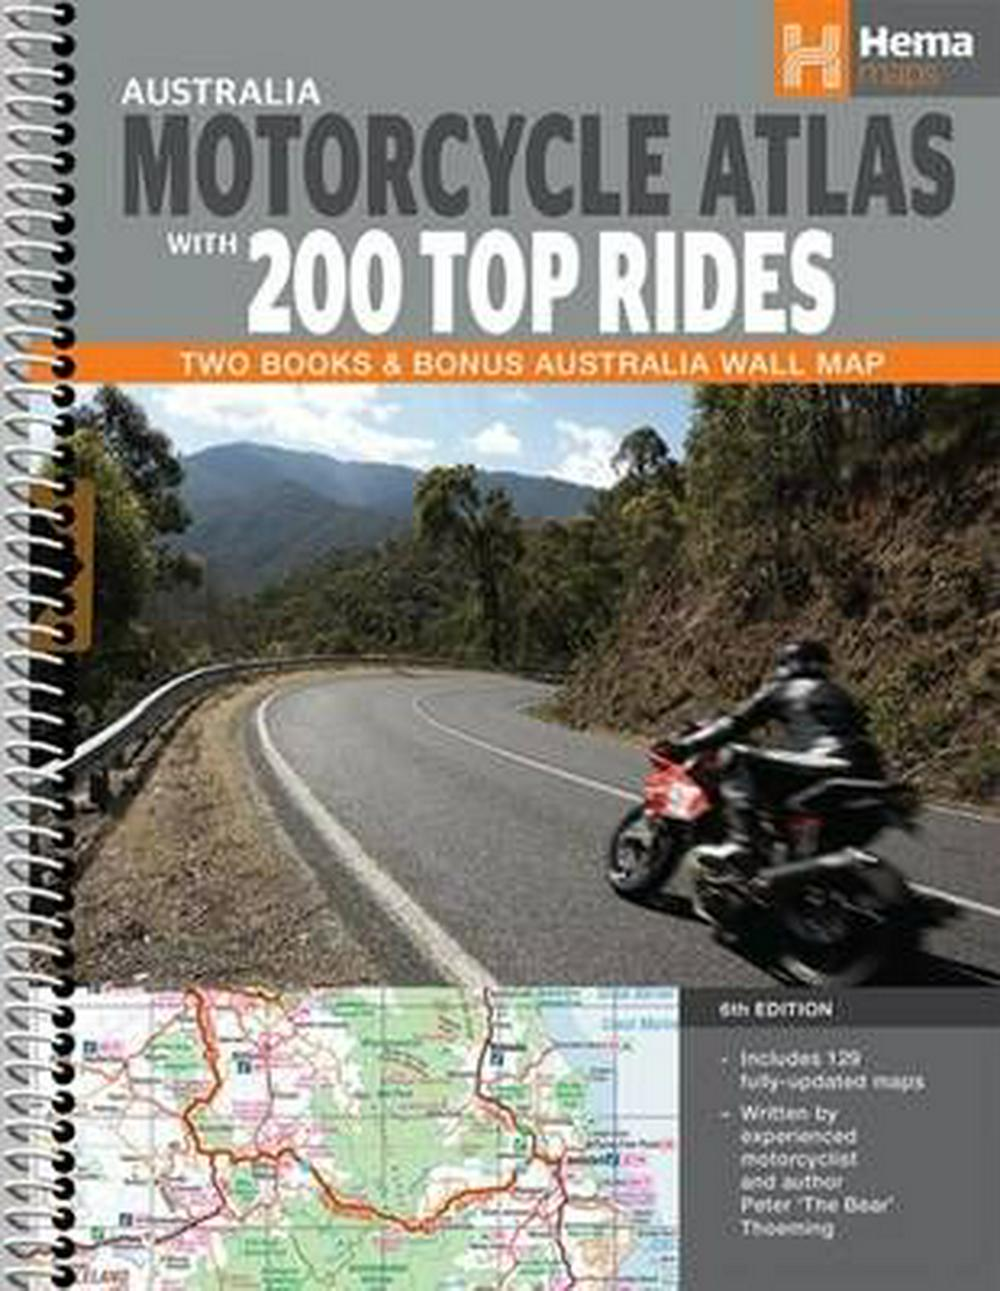 Hema : Australia Motorcycle Atlas + 200 Top RidesTwo Books & Bonus Australia Wall Map : 6th Edition